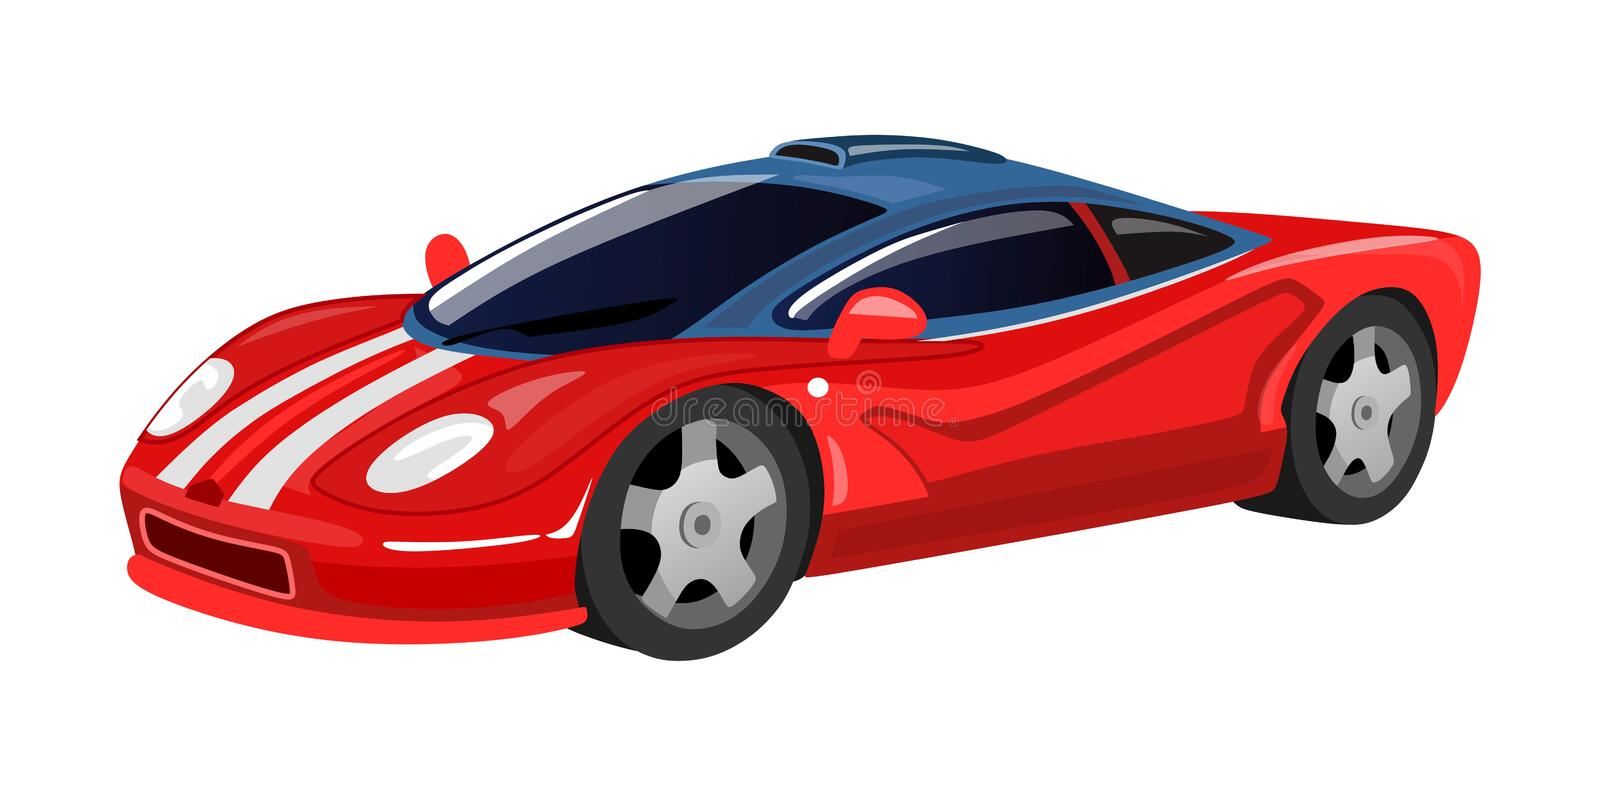 Racing car icon isolated on white background for print, cards, posters in cartoon style. Red vector racing sport car illustration royalty free illustration